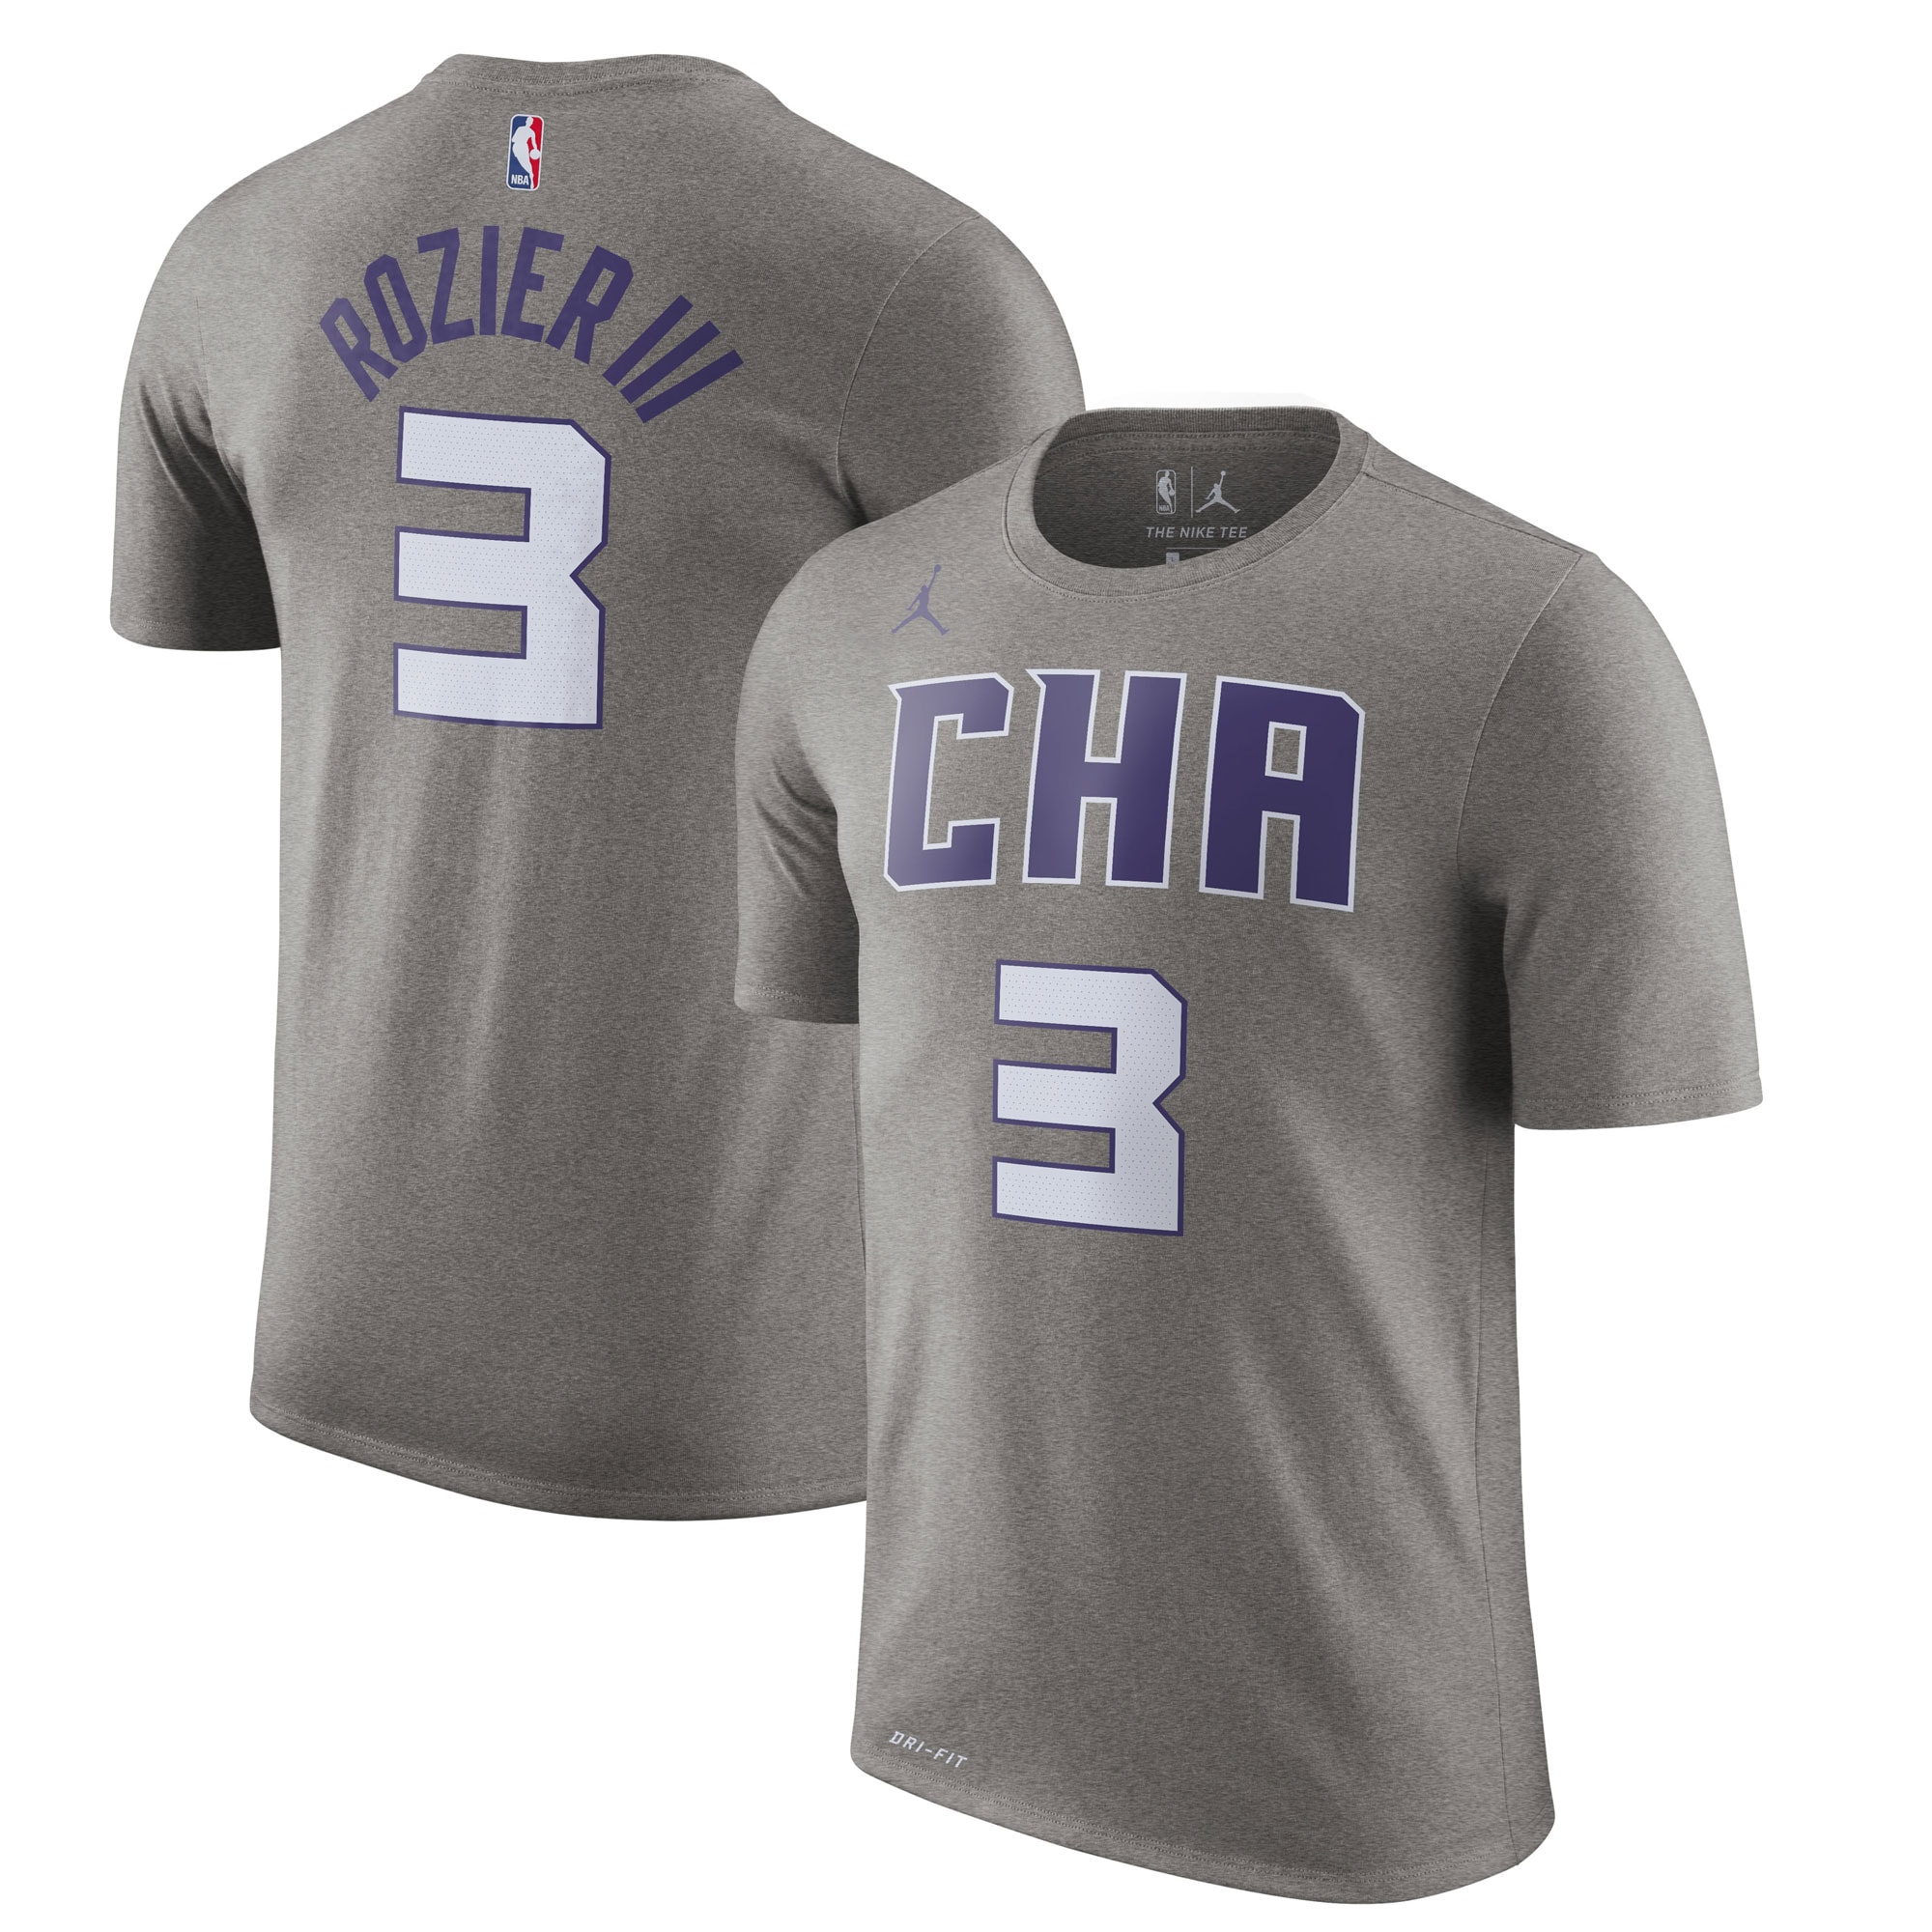 Terry Rozier Charlotte Hornets Jordan Brand 2019/20 City Edition Name & Number T-Shirt - Heather Gray